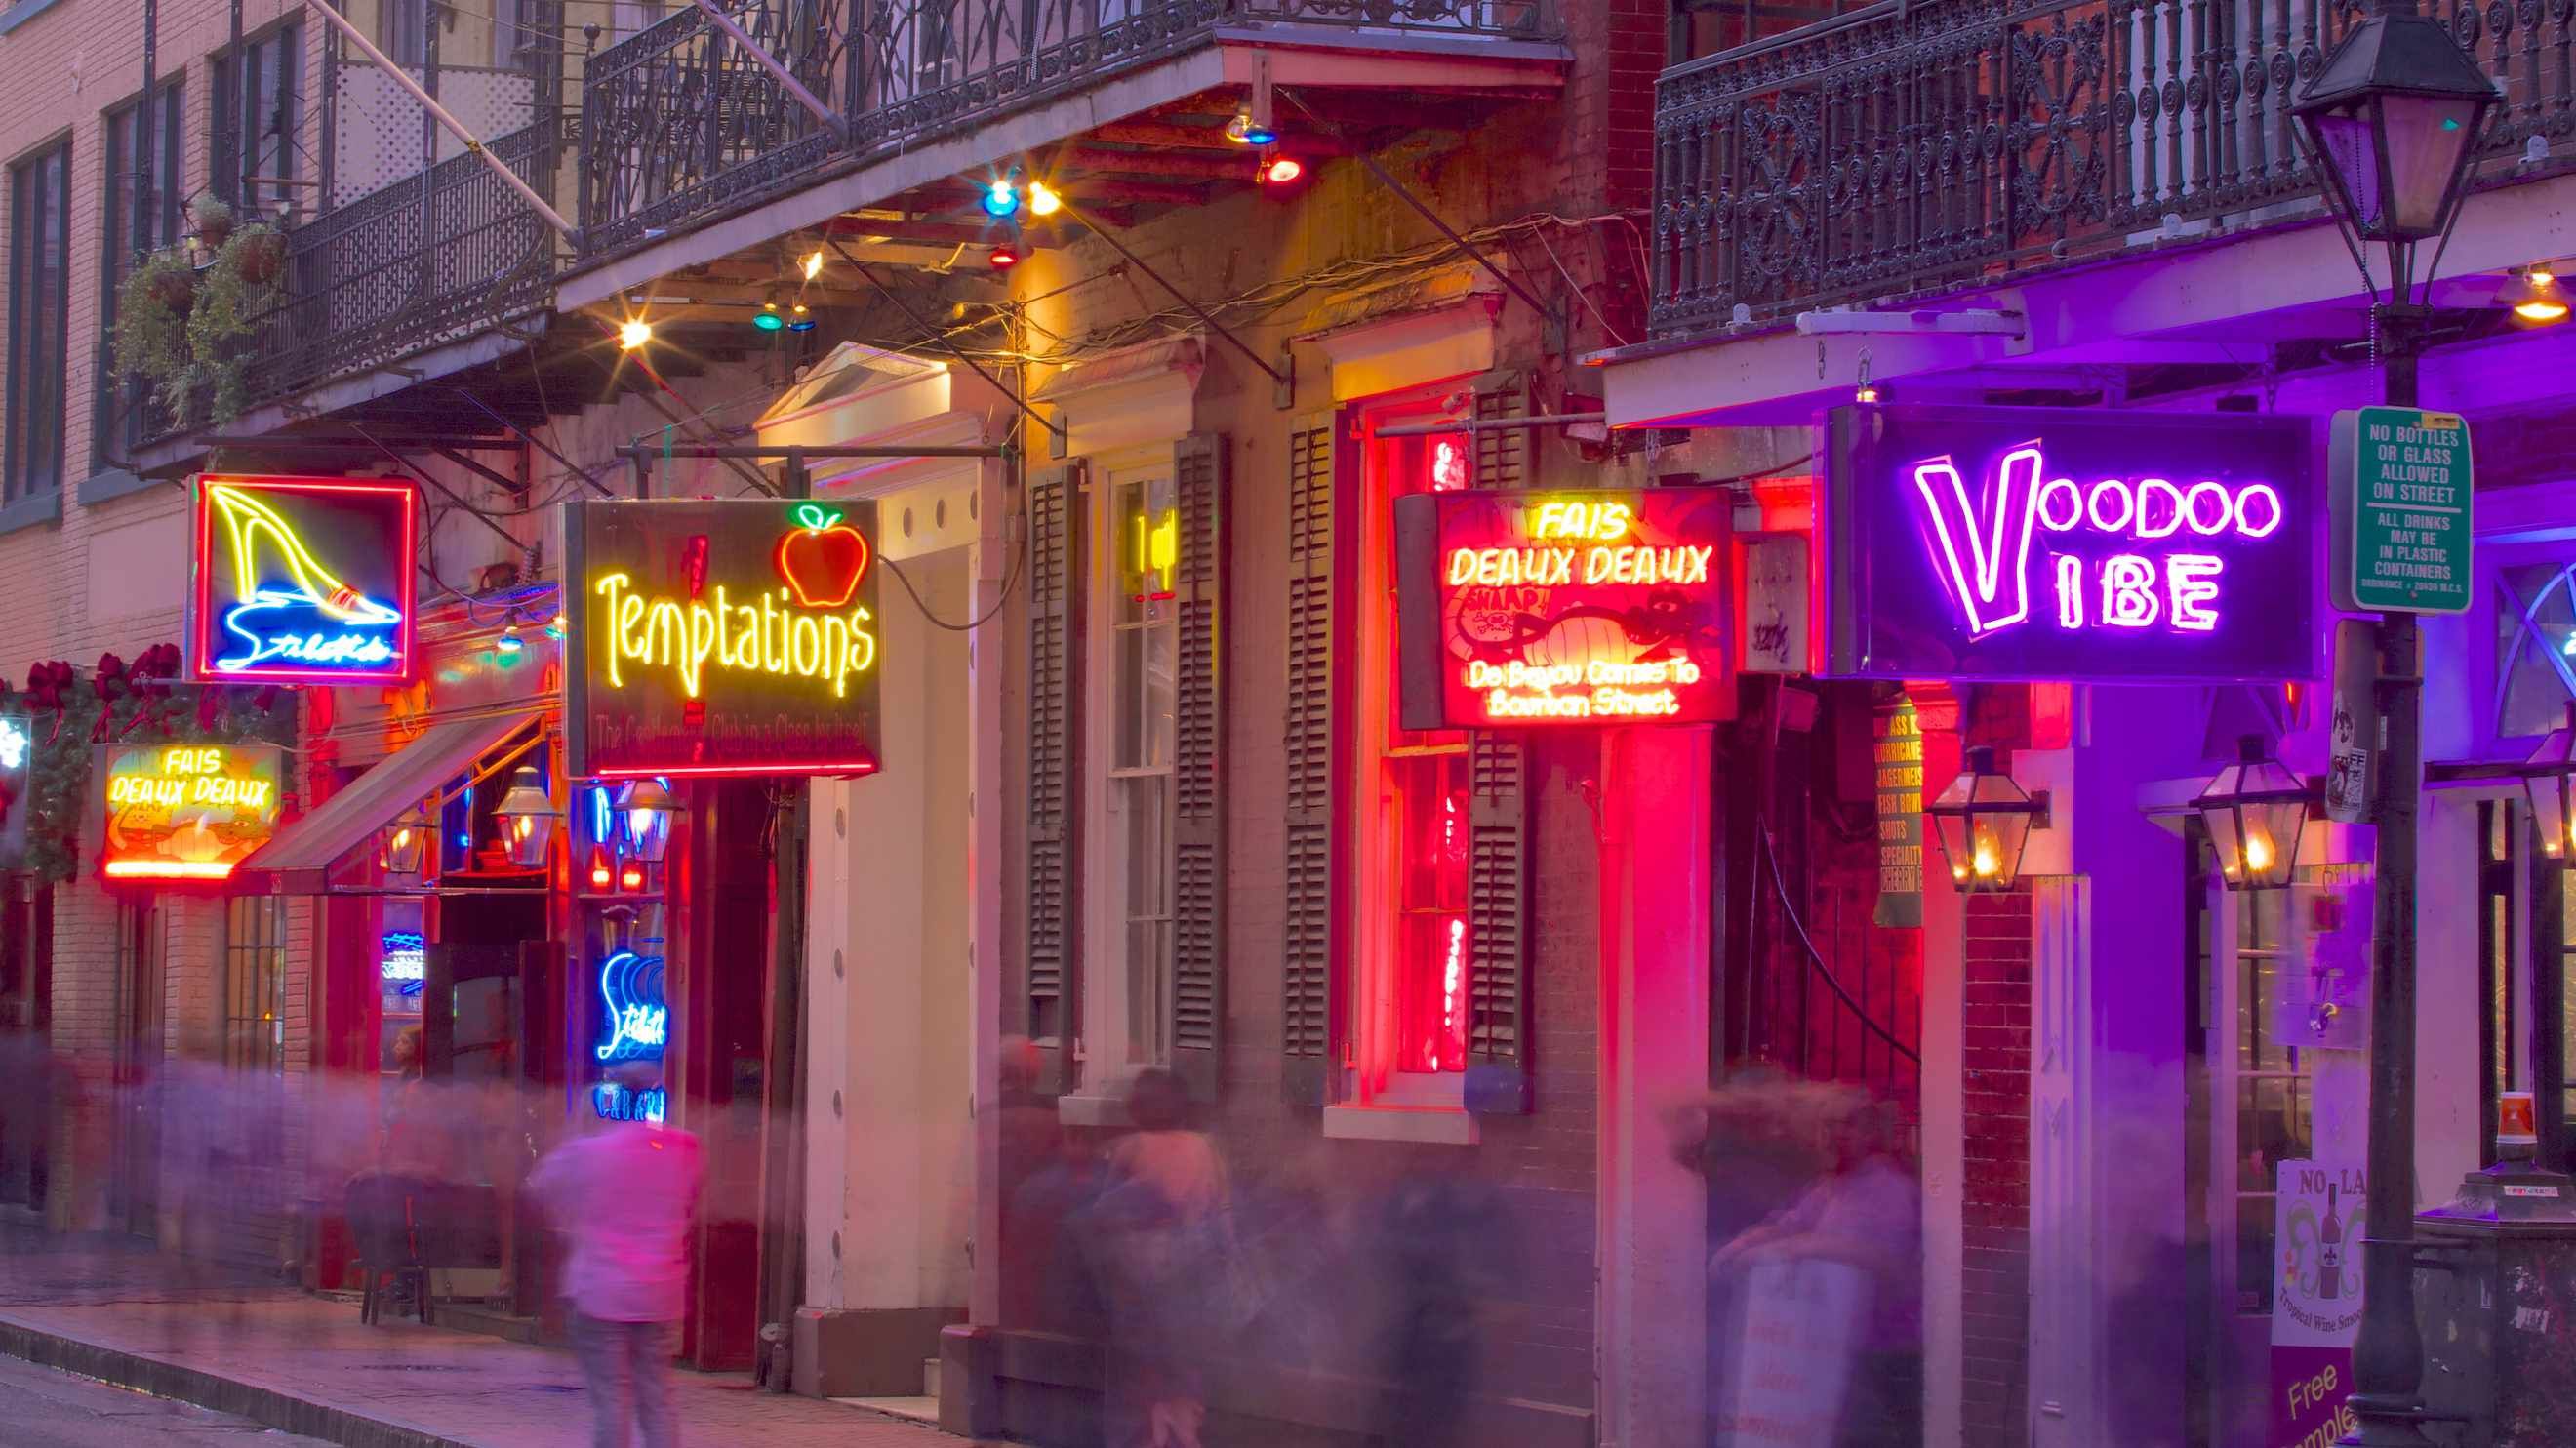 Things To Do In New Orleans 2019 : Top Attractions